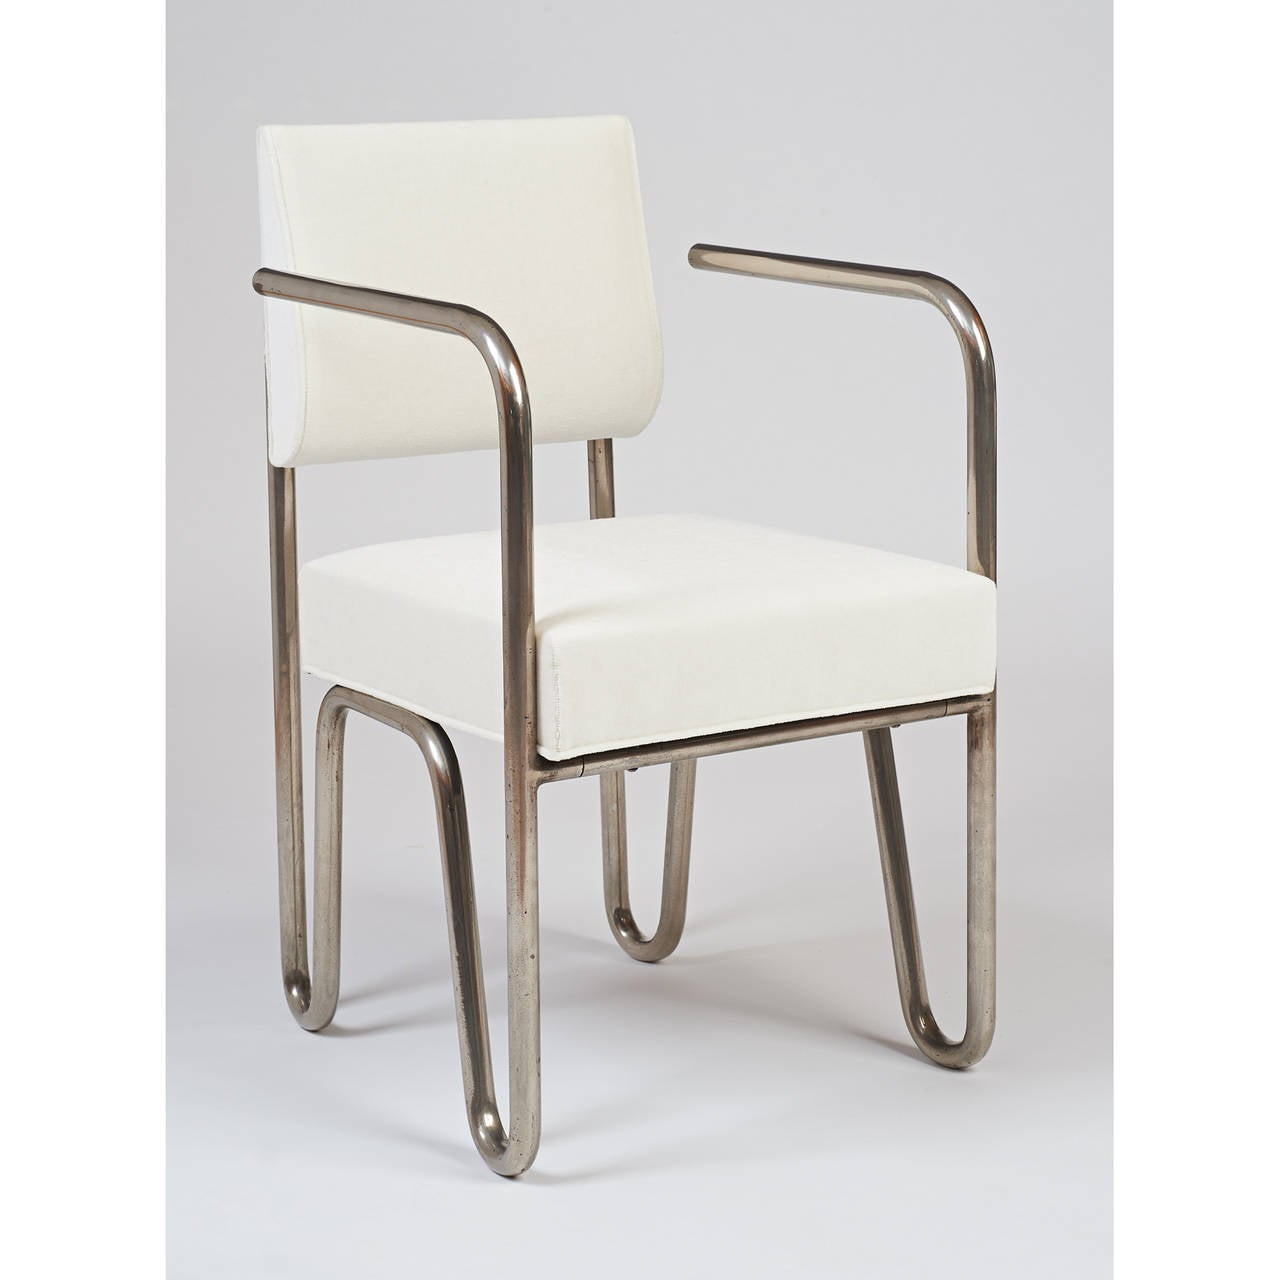 Early Pair of Tubular Metal Chairs by Andre Sornay, ca.1929 3